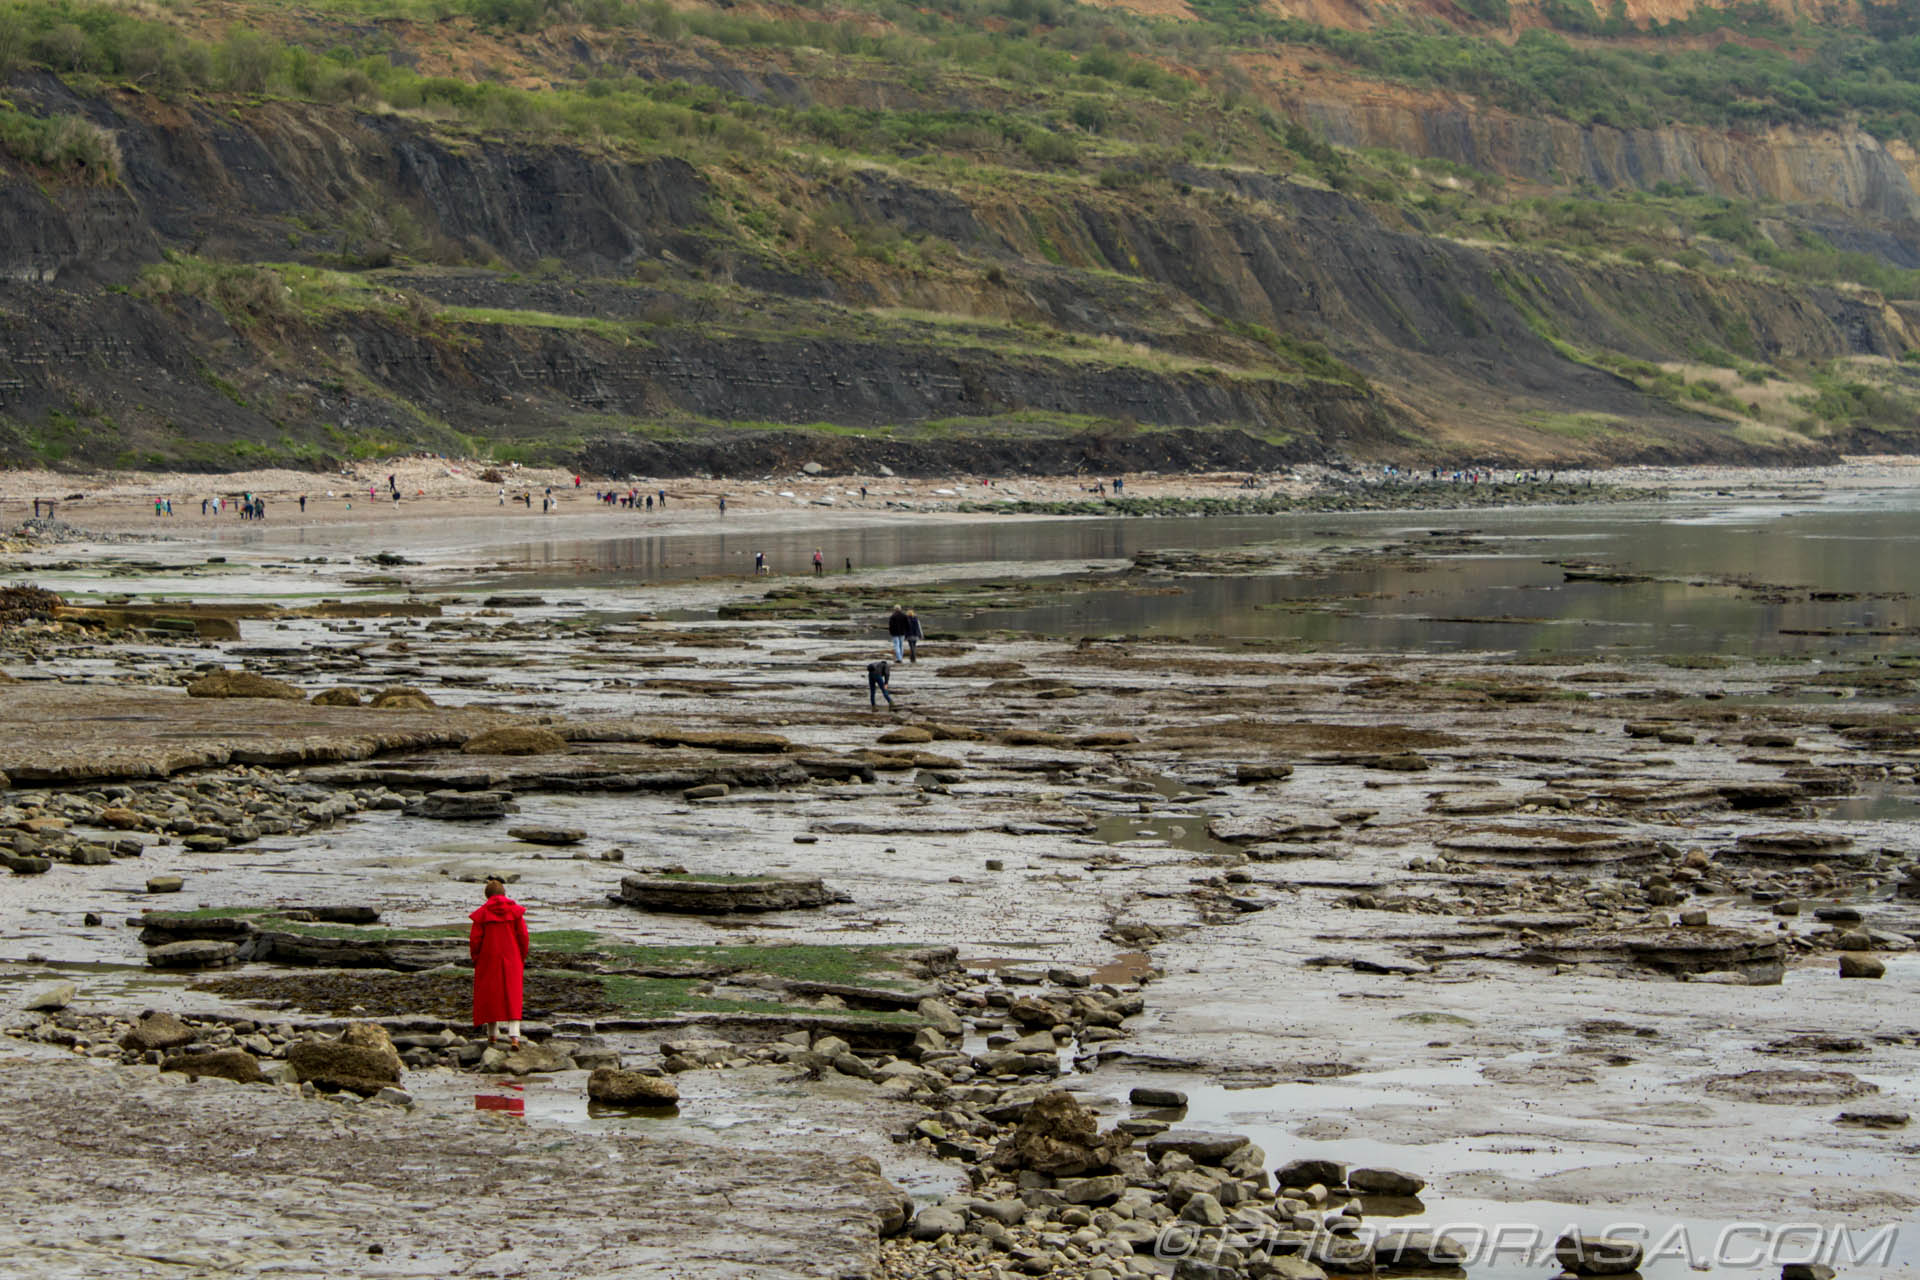 http://photorasa.com/jurassic-coast-lyme-regis/red-woman-and-beachy-rocks/